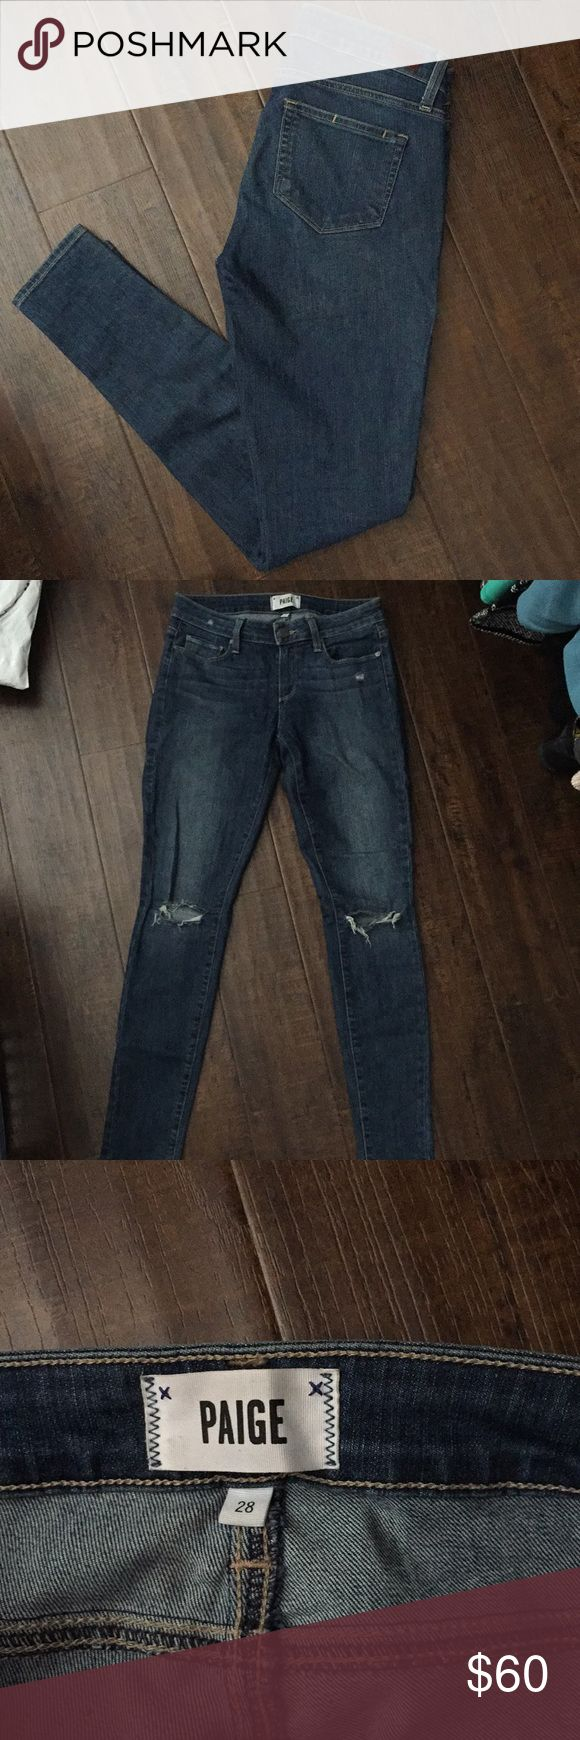 Paige jeans Like new Paige jeans. Rips on both knees. Feel free to make an offer :) PAIGE Jeans Skinny